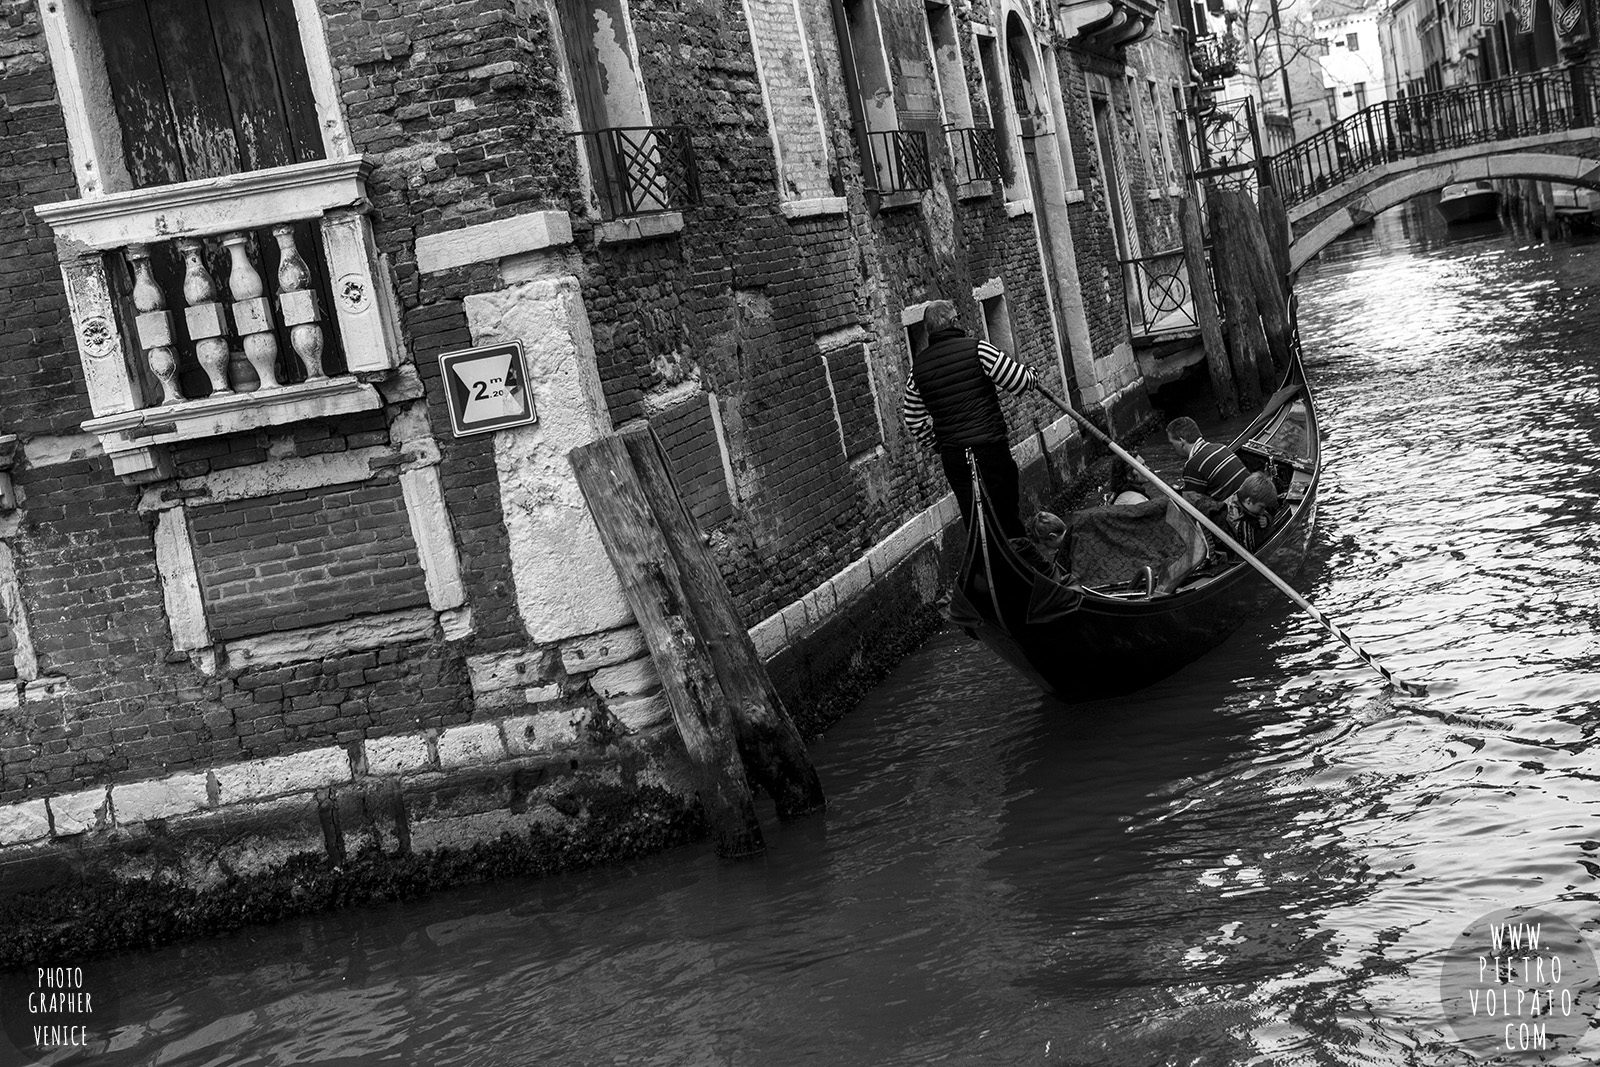 photographer-venice-photography-workshop-tour-private-photo-walk-exploring-learning-20160302_05